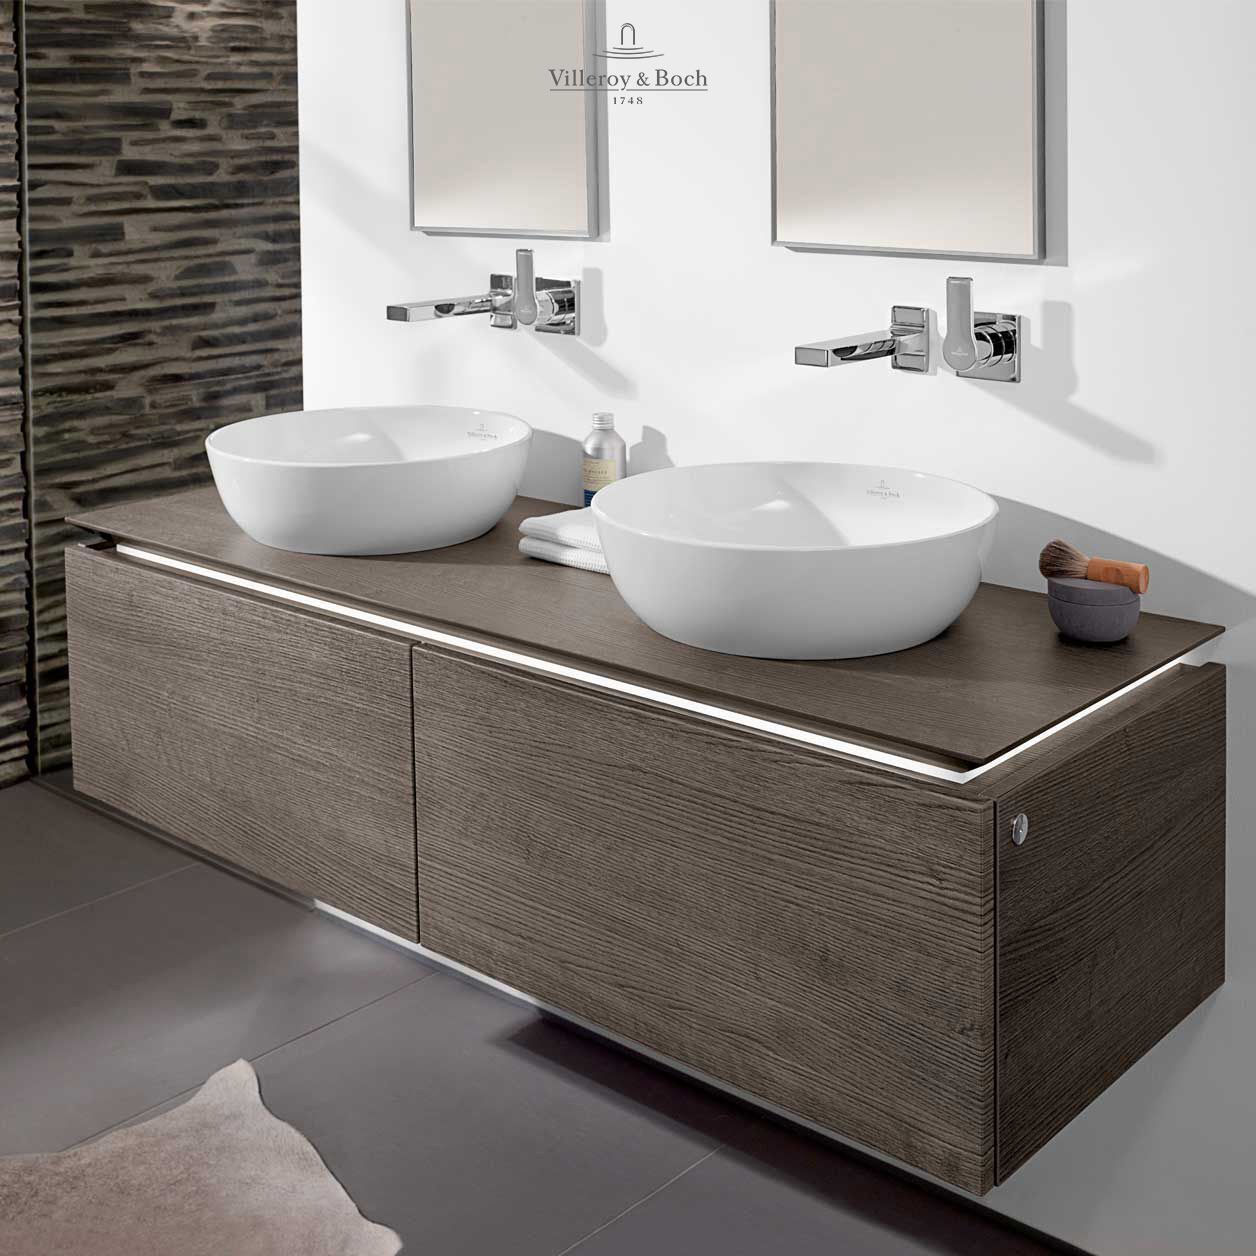 oak graphite villeroy boch - Bathroom Designs Villeroy And Boch